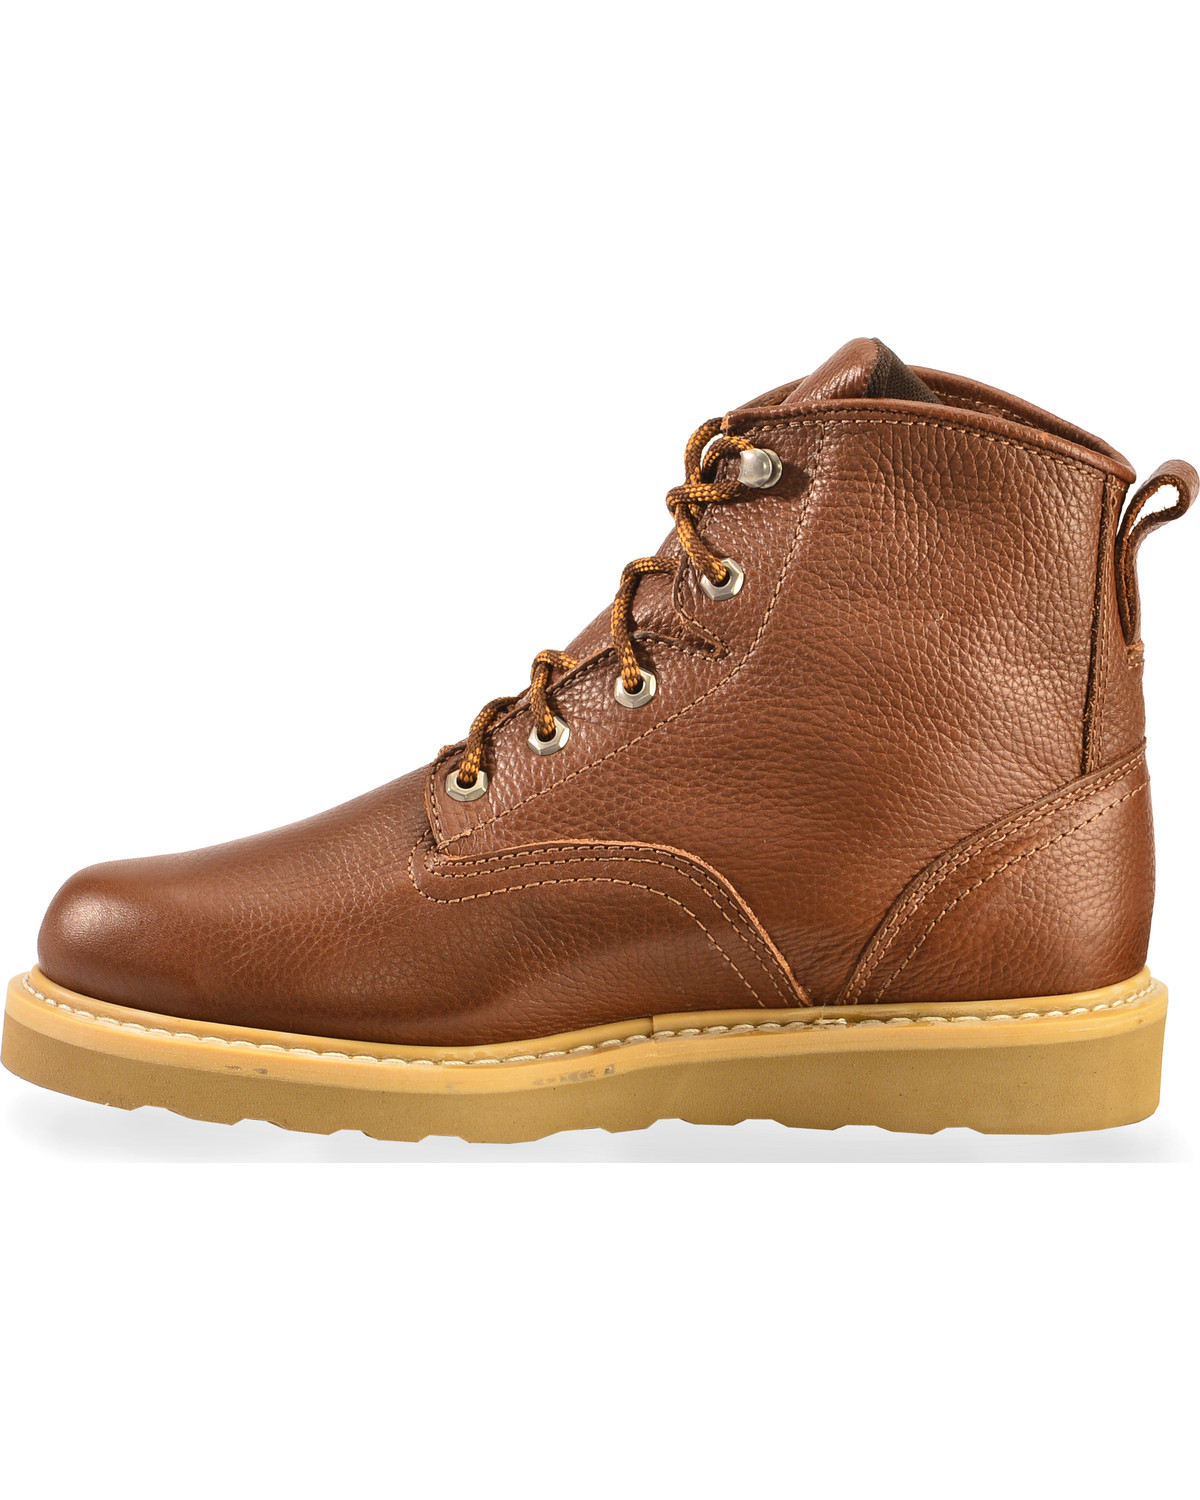 American Worker Men S 6 Quot Lace Up Work Boots Steel Toe